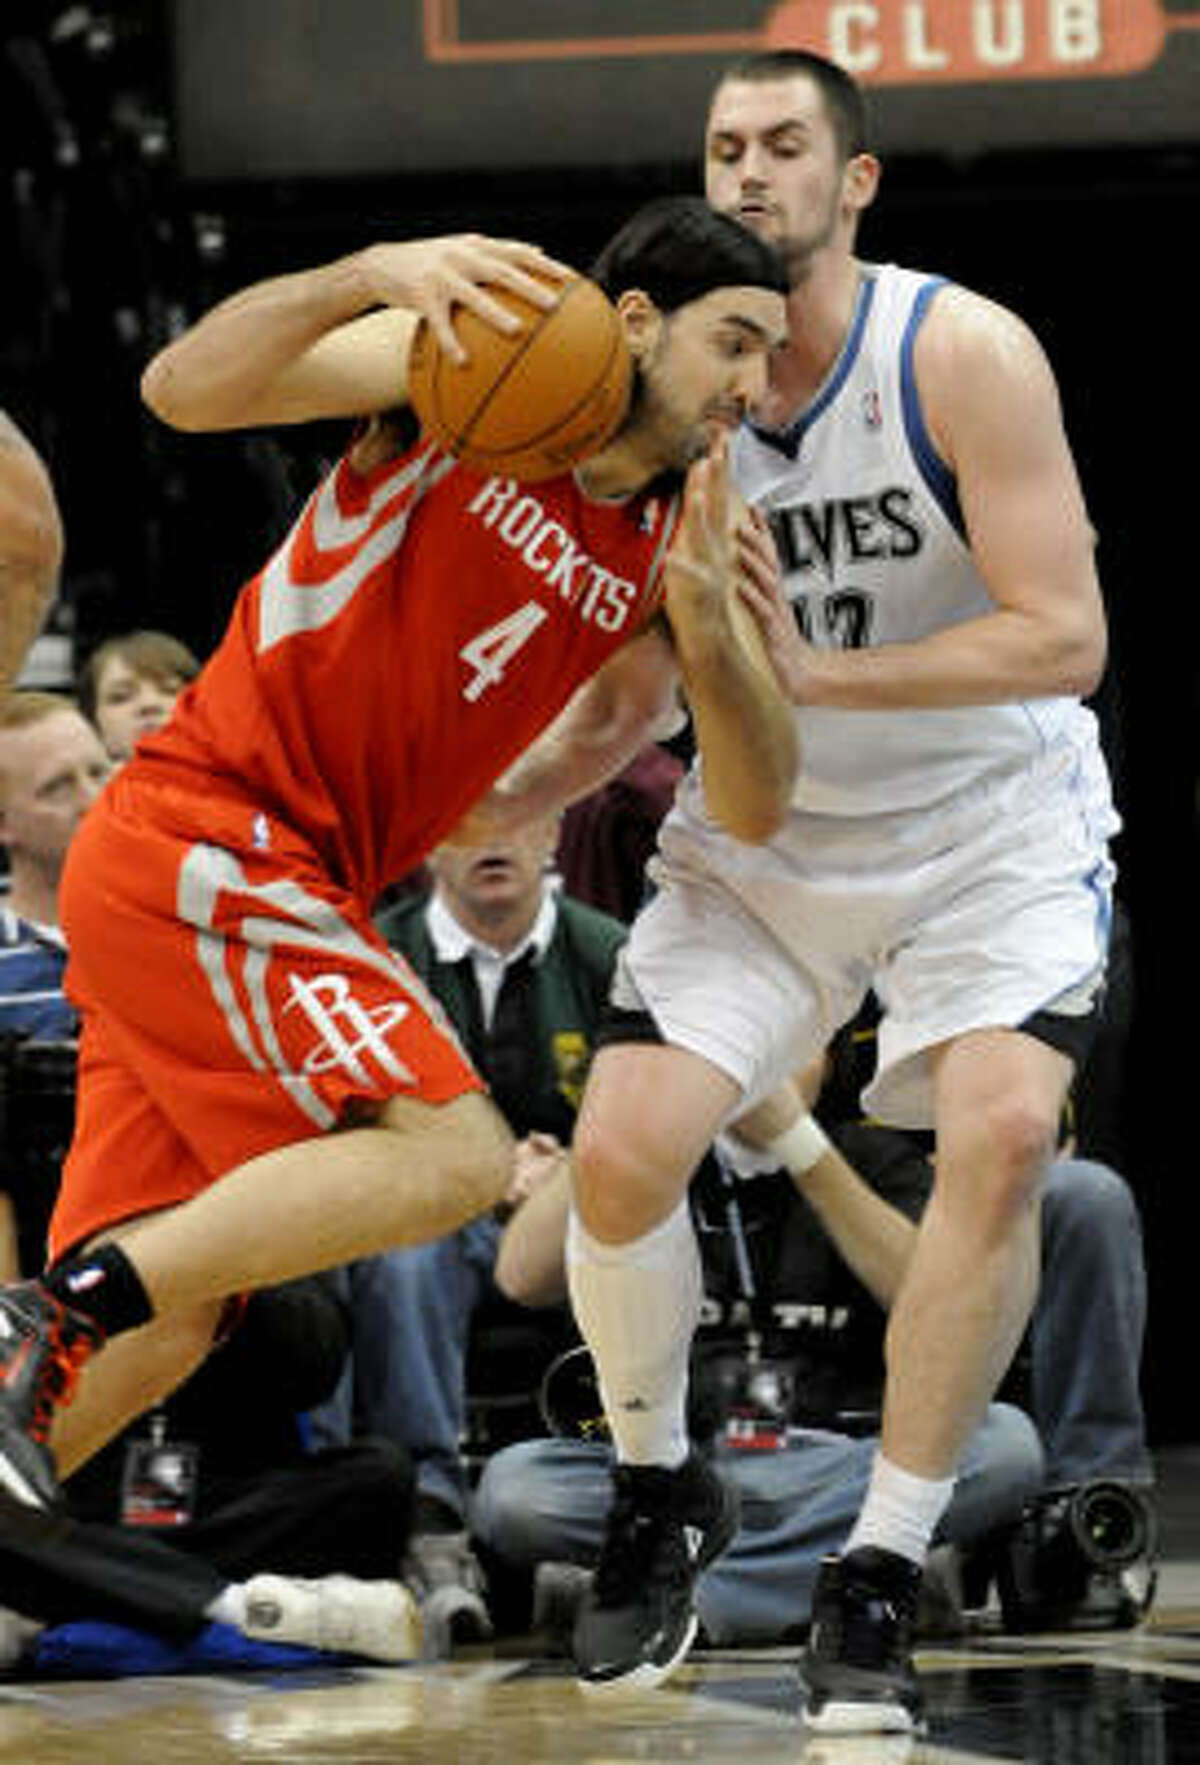 Rockets forward Luis Scola, left, drives around Timberwolves forward Kevin Love.